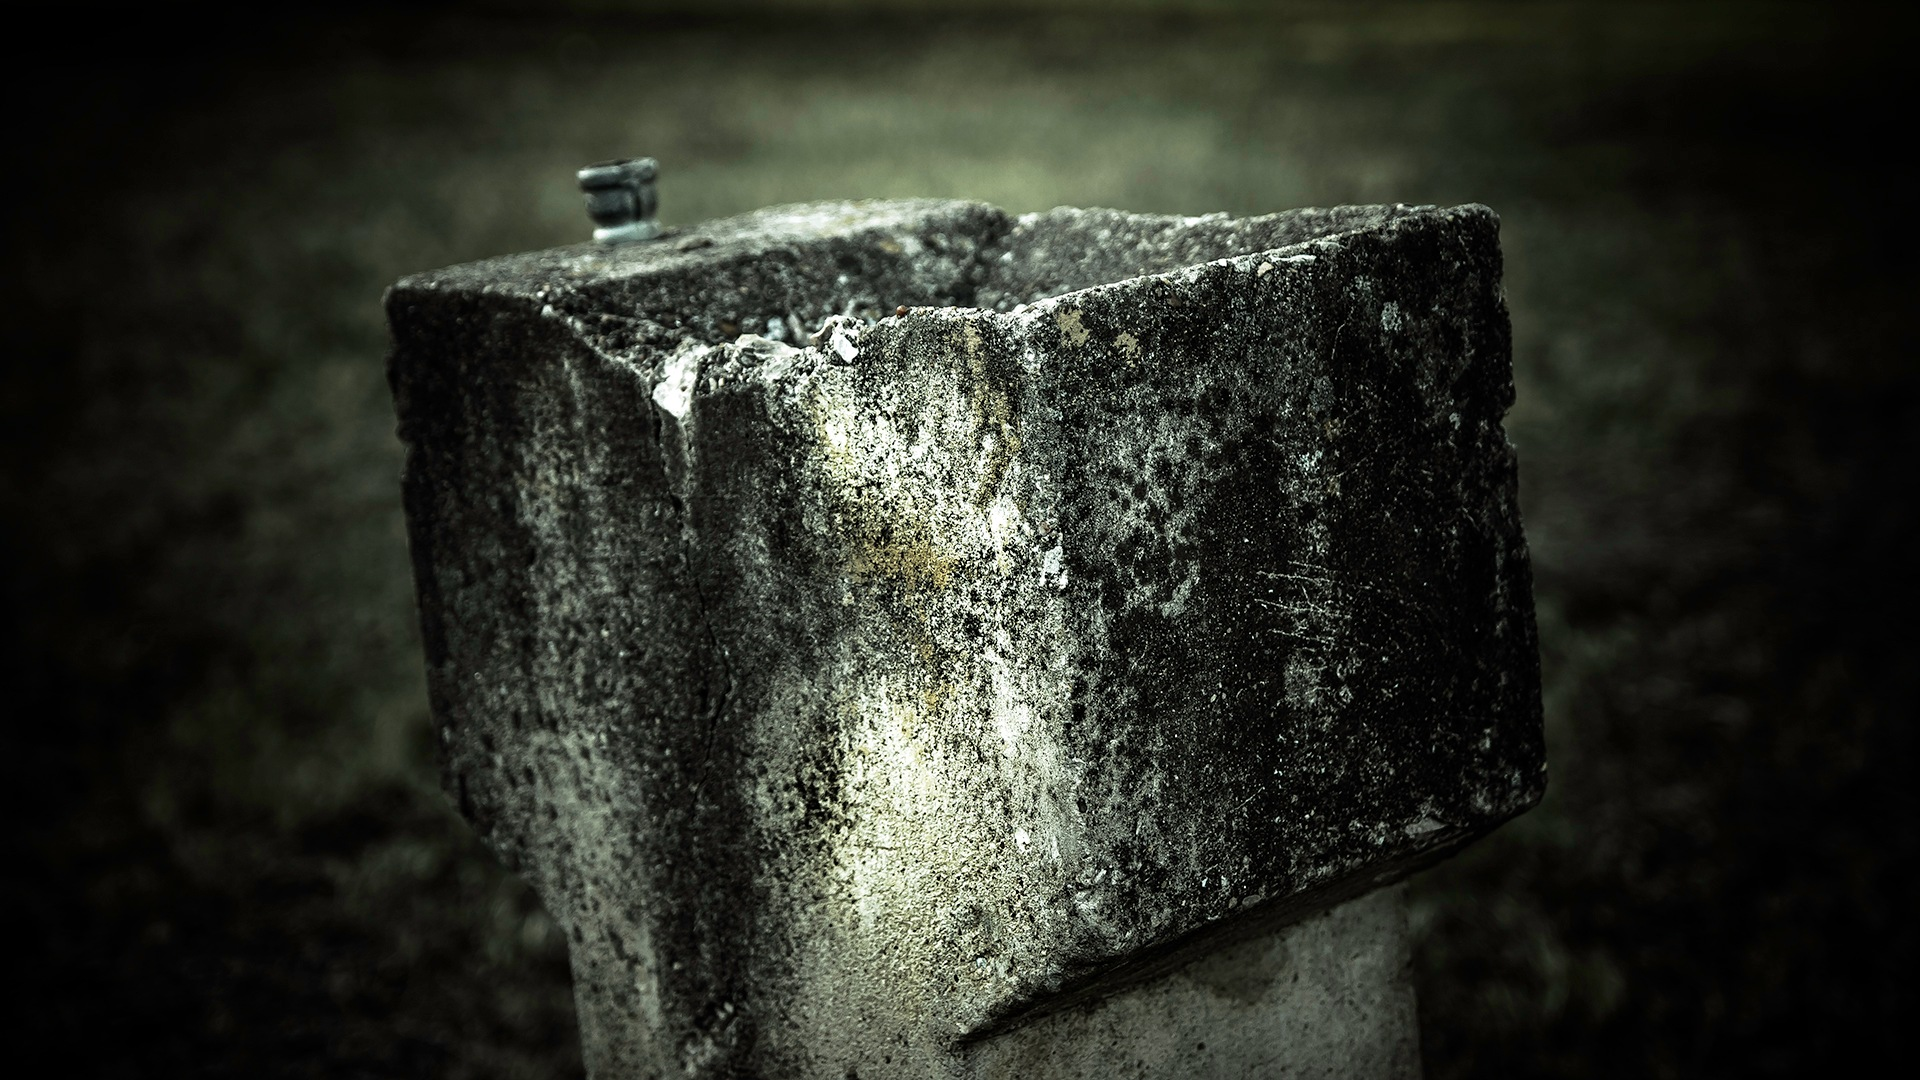 Old Broken Faucet by Lane L Gibson